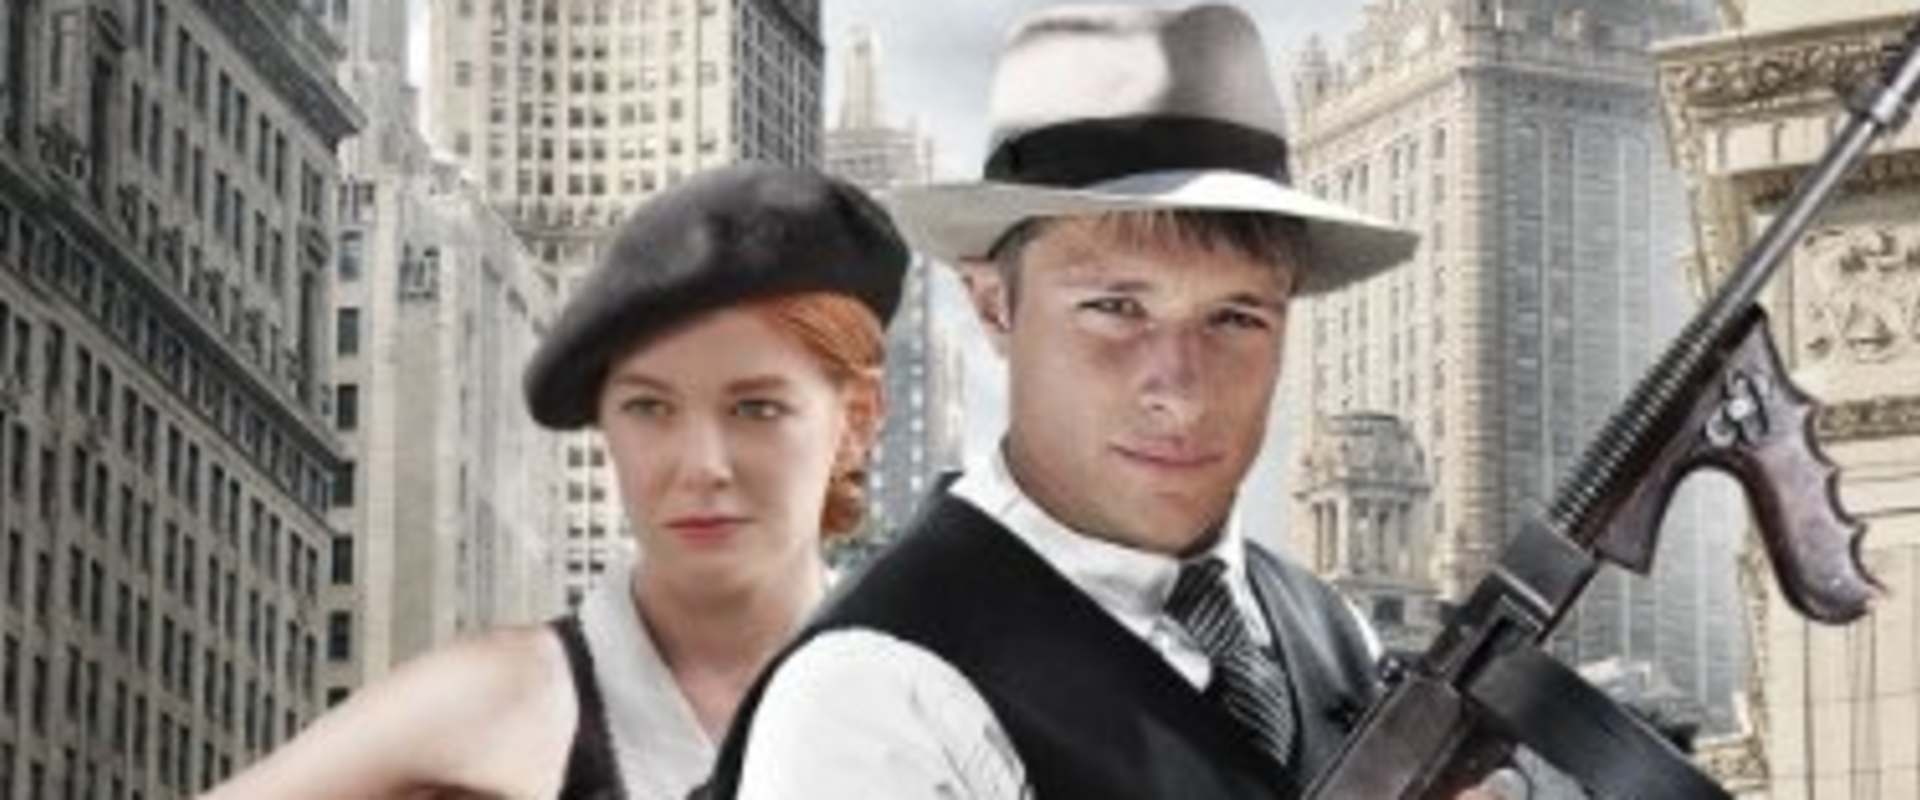 Bonnie & Clyde: Justified background 1